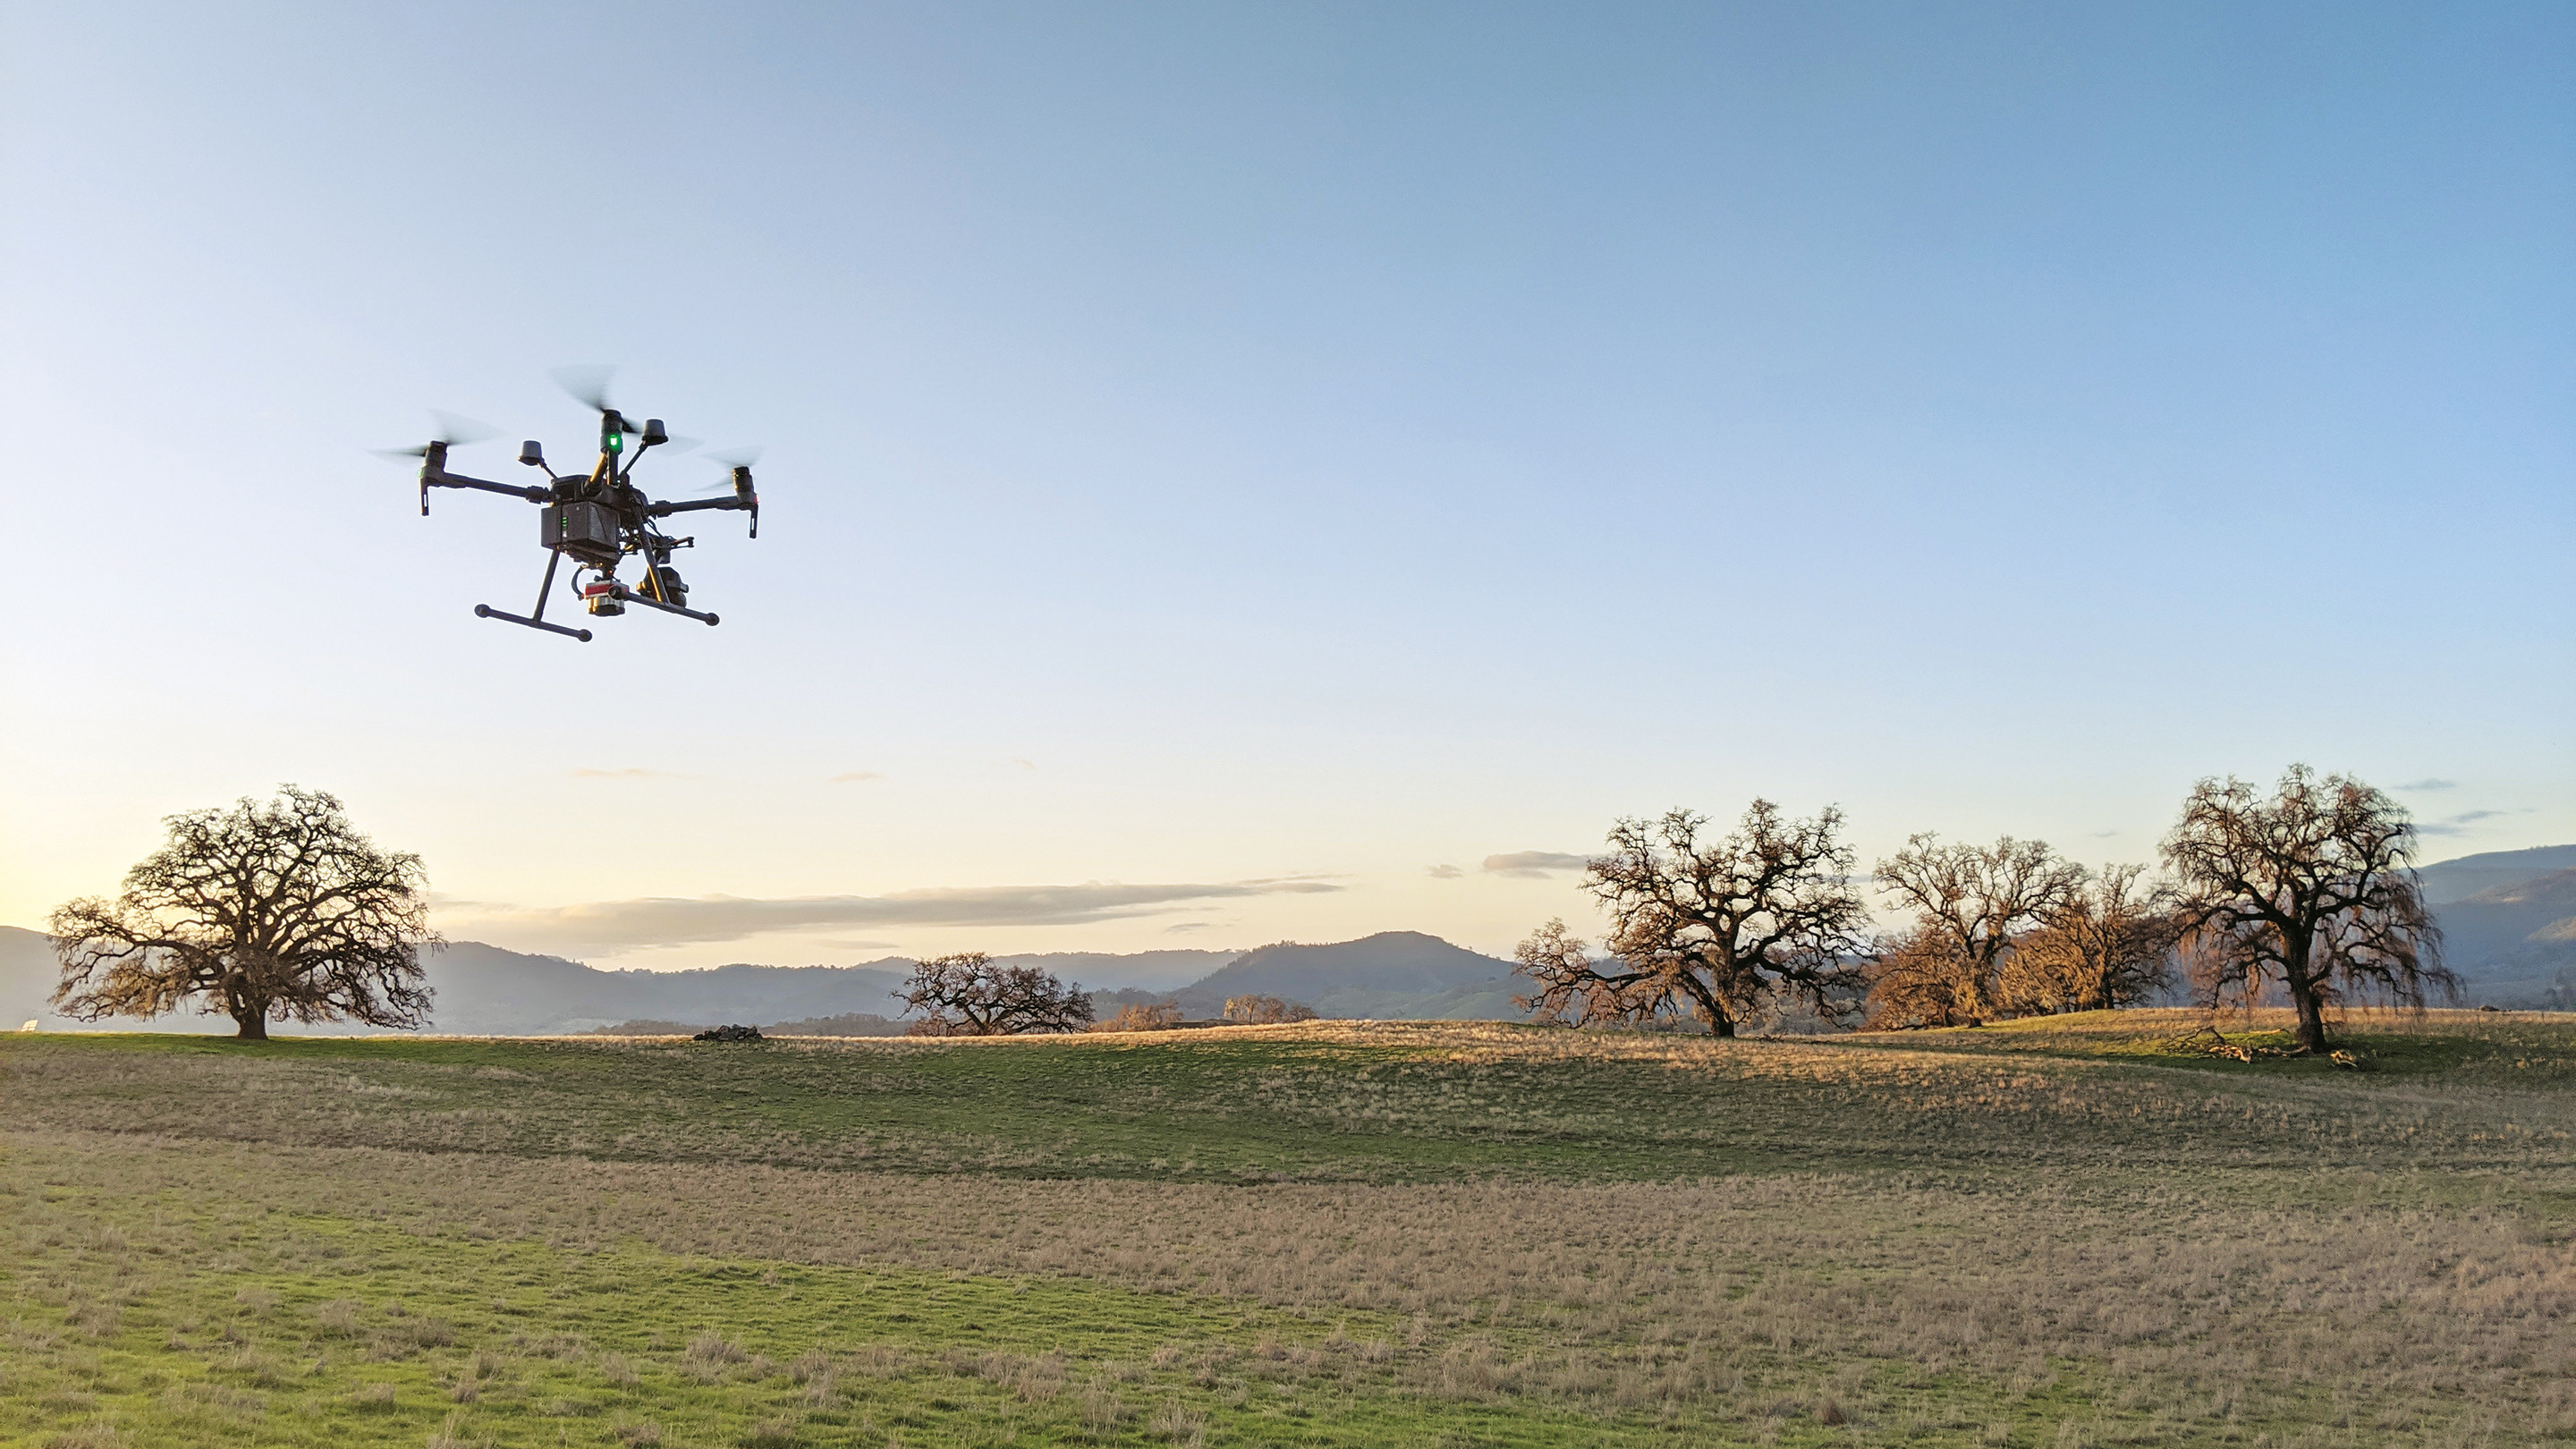 Drone flying above a landscape